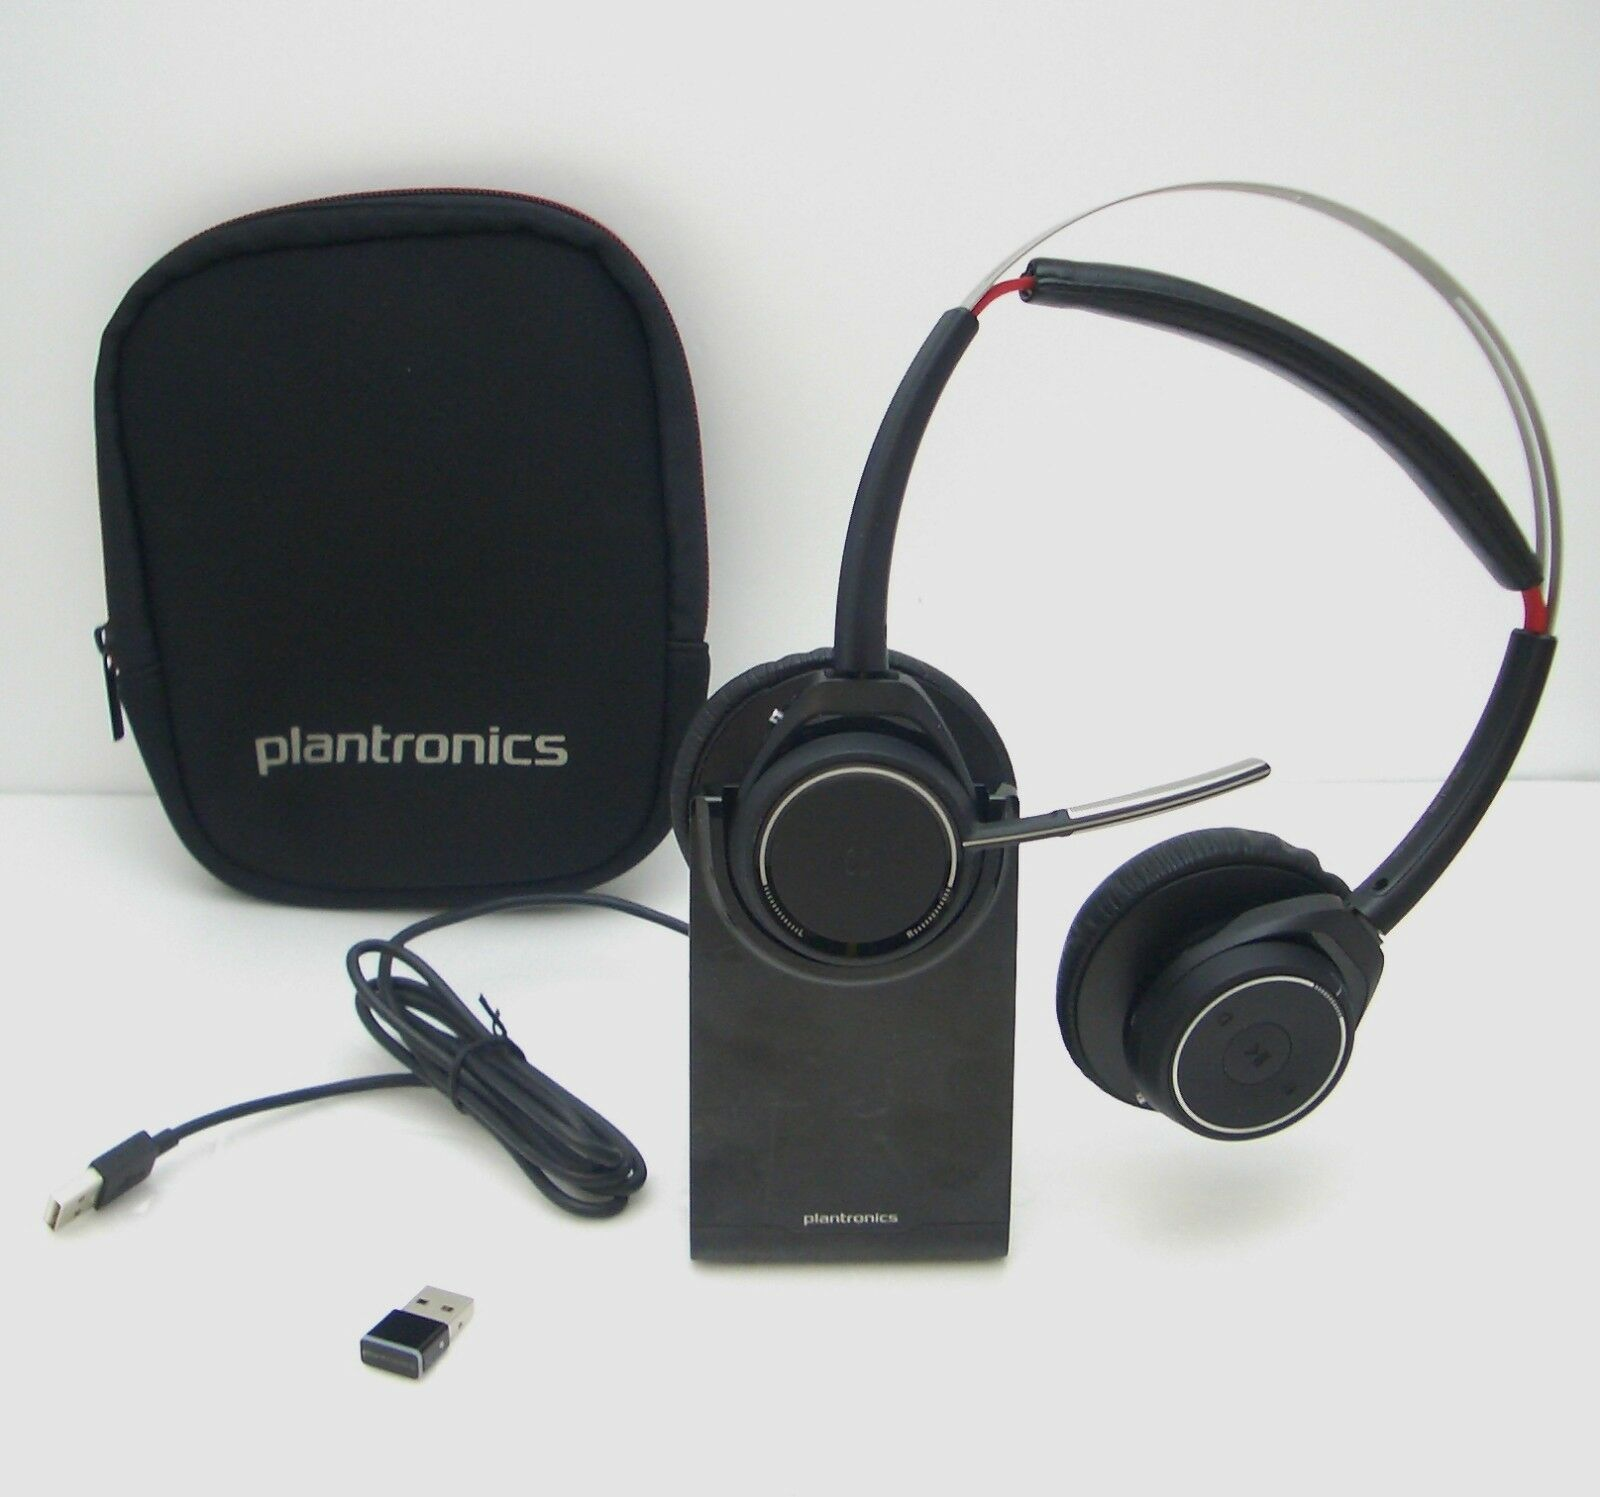 Plantronics Voyager Focus Uc B825 Wireless Computer Headset With Charging Stand 17229147782 Ebay